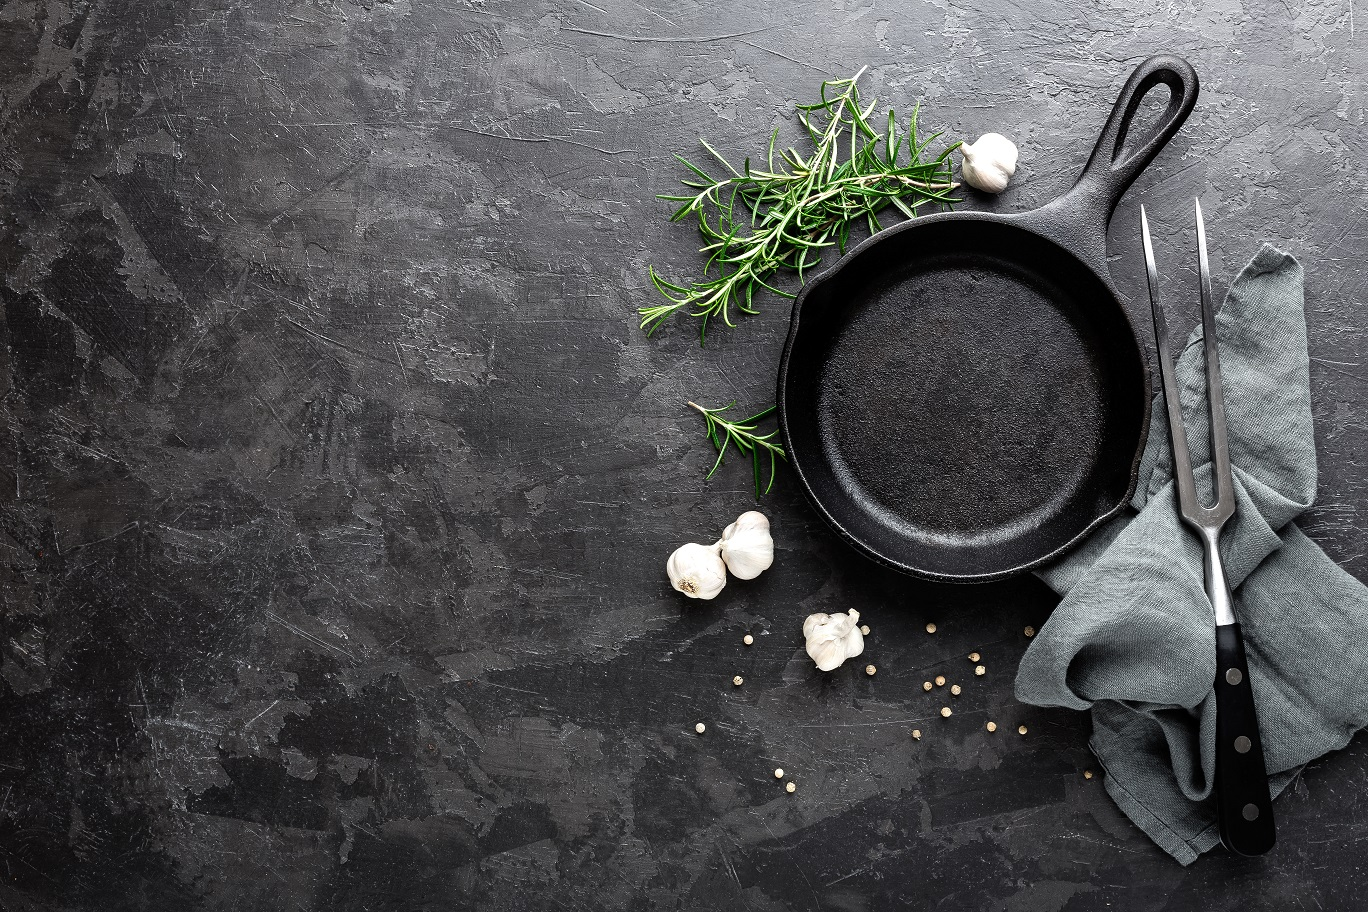 Black Cast iron skillet with garlic rosemary and a carving fork